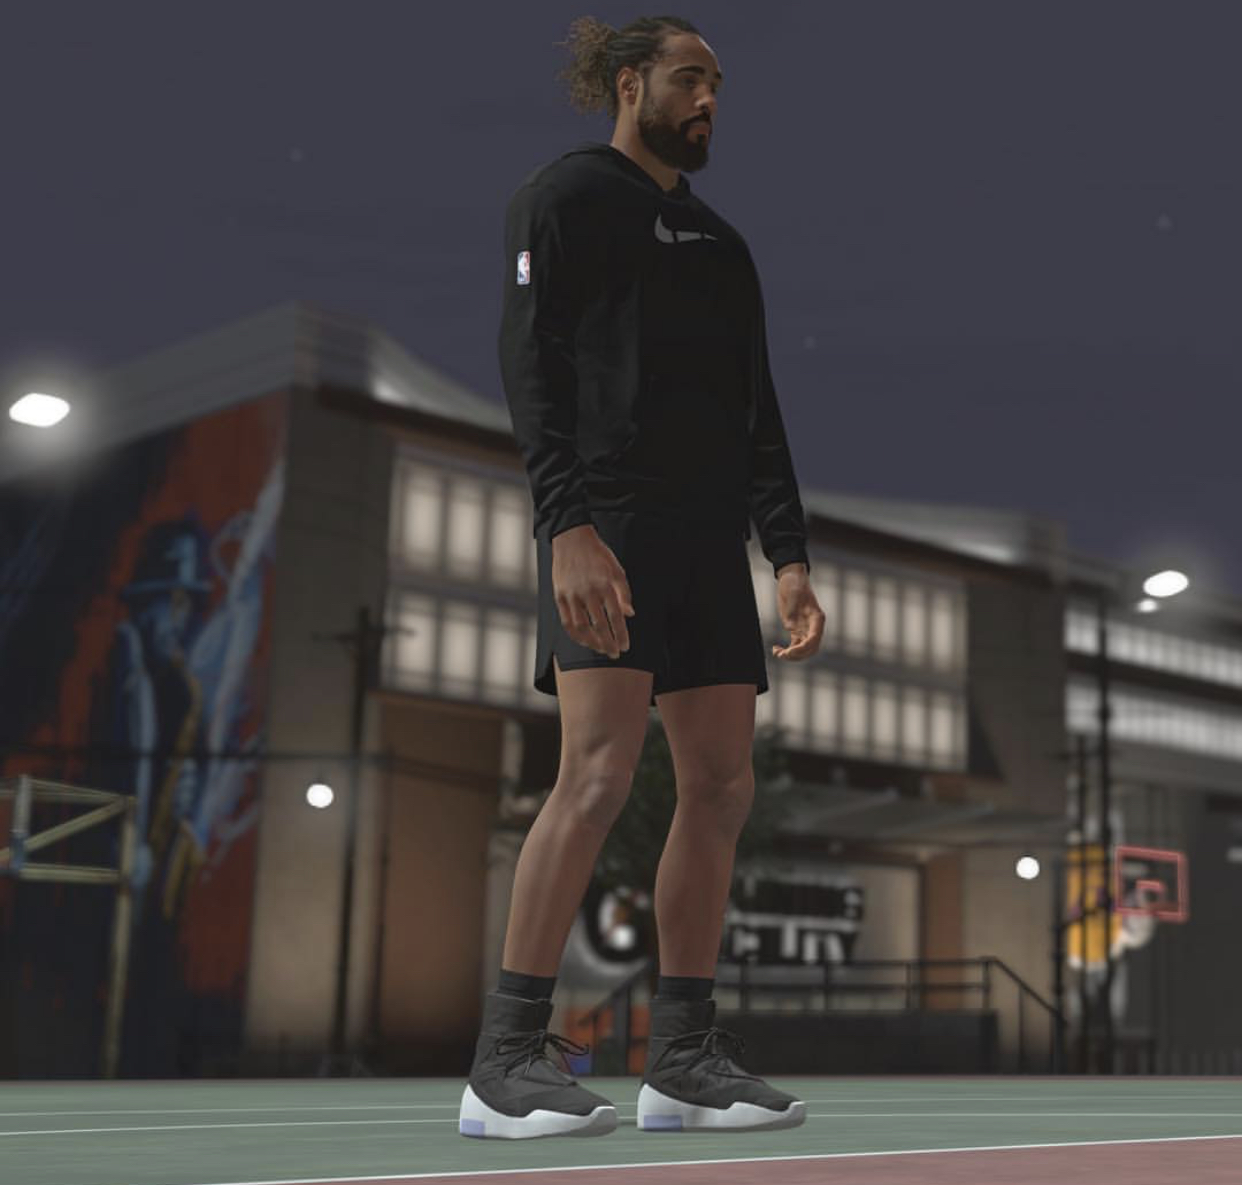 Jerry Lorenzo, round of FEAR OF GOD, in AIR FEAR OF GOD 1 in NBA2K